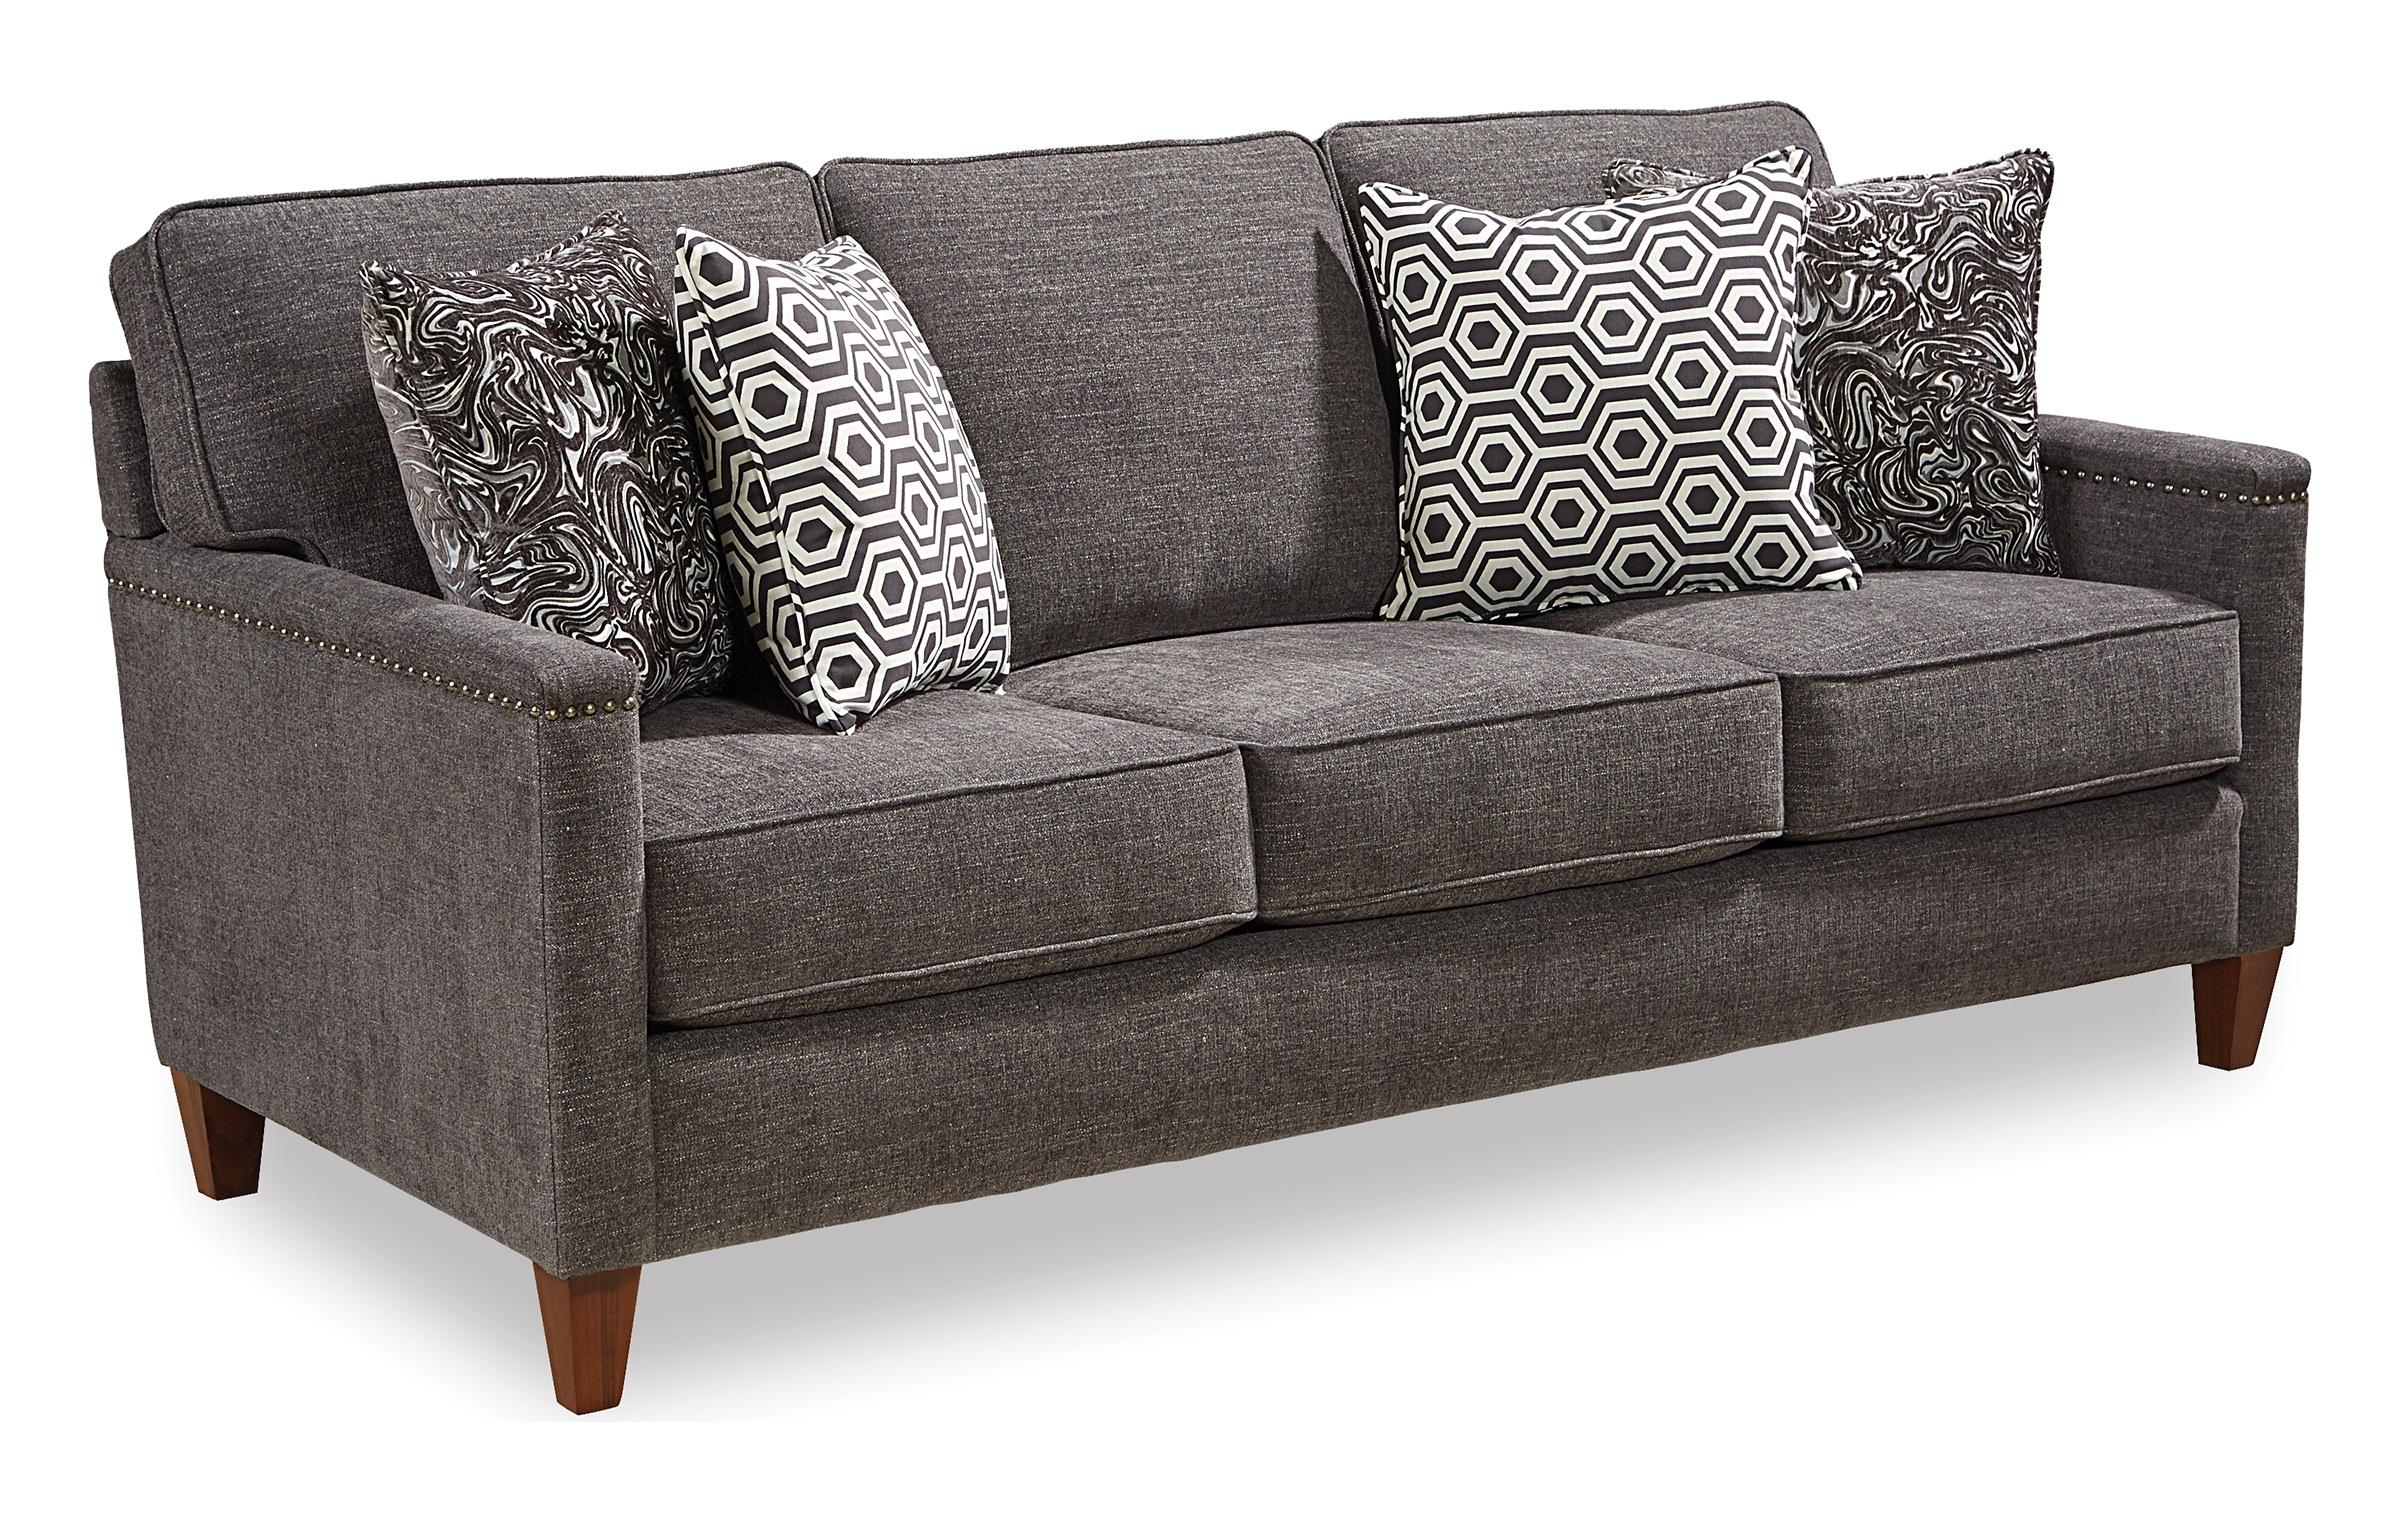 Broyhill Furniture Lawson Sofa - Item Number: 4254-3-4202-97